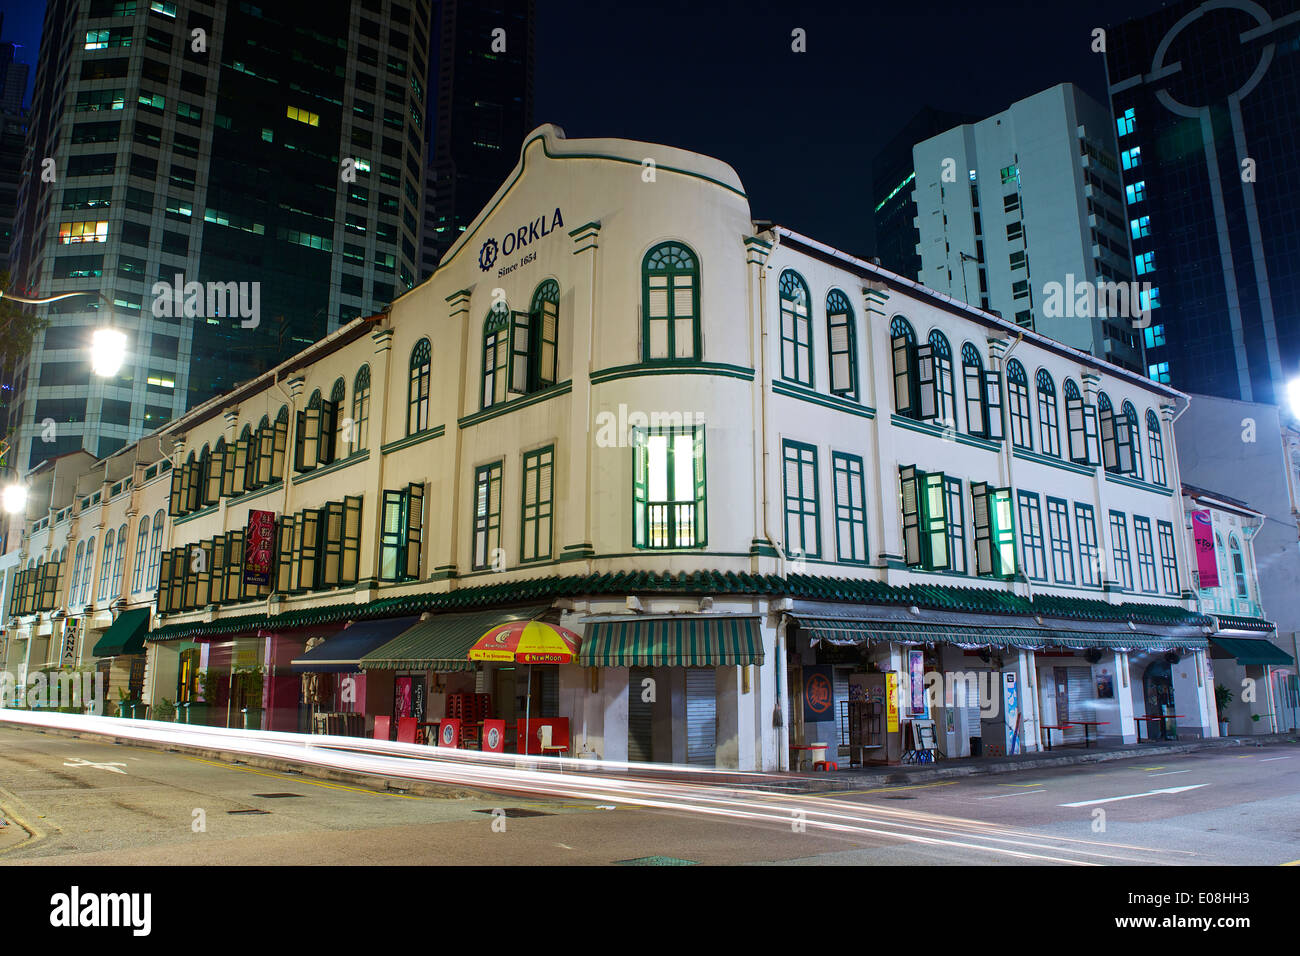 Ancient and Modern Colonial Era Buildings Contrast With Modern Tower Blocks On Telok Ayer Street In Singapore. - Stock Image